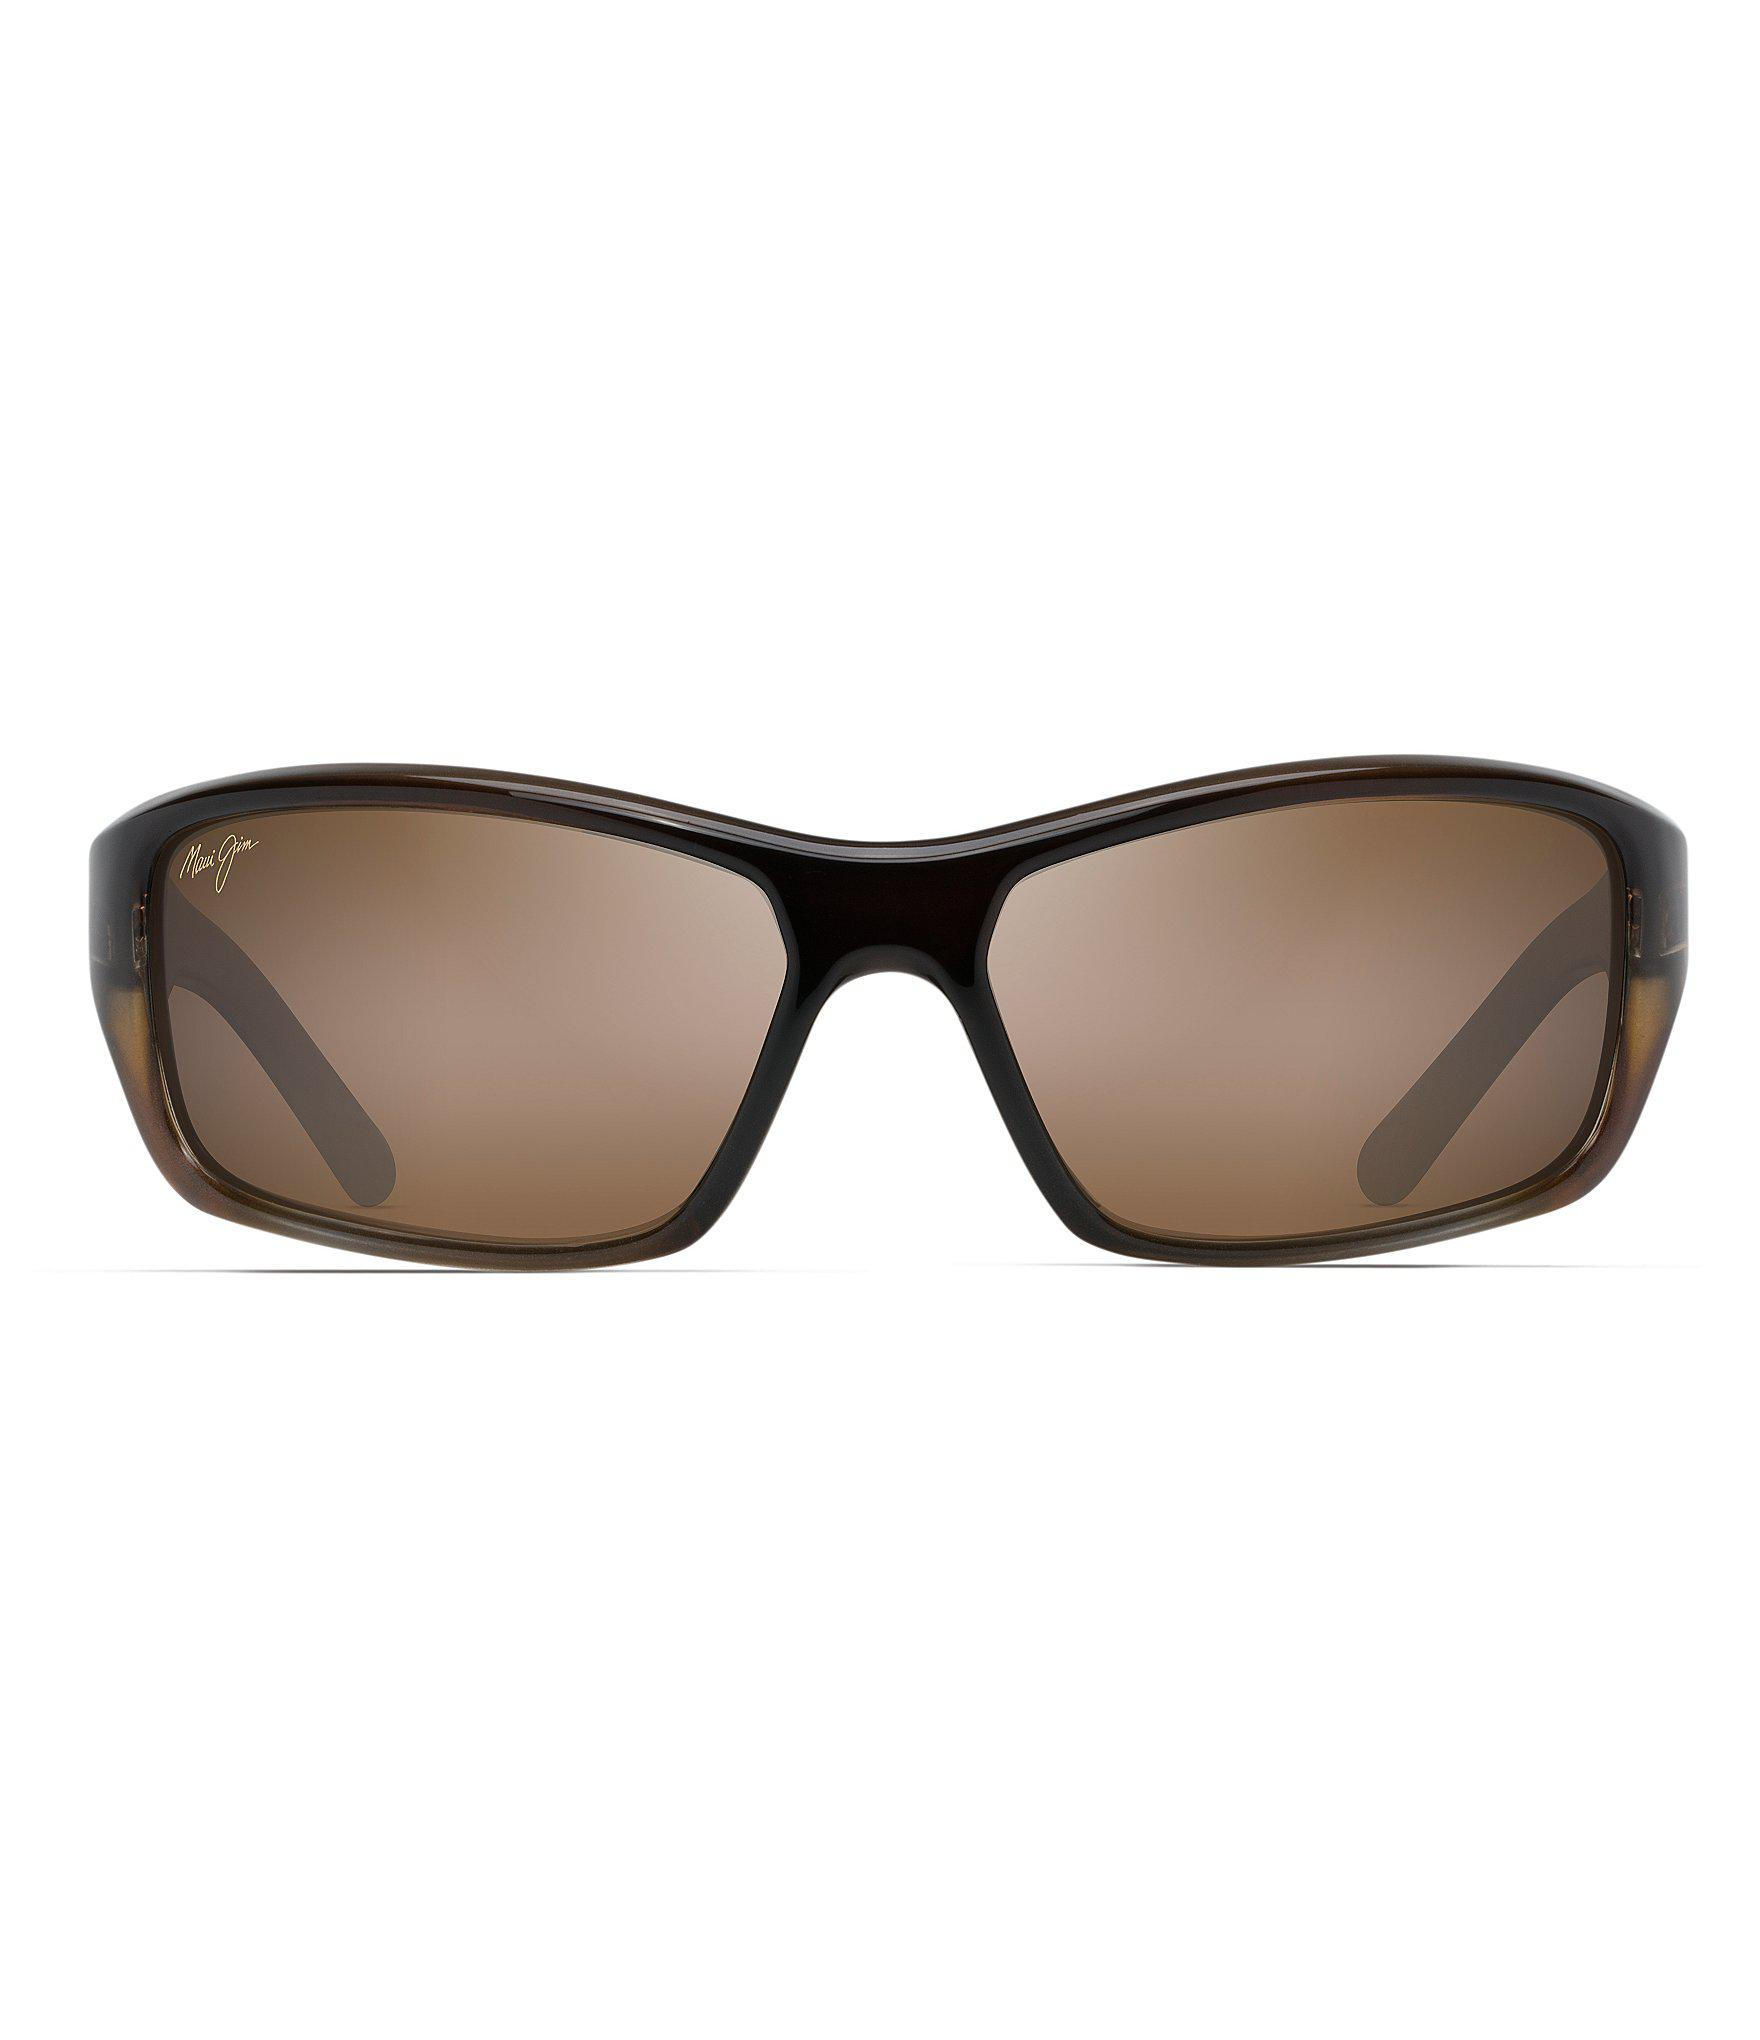 6337587835 Lyst - Maui Jim Barrier Reef Polarized Sunglasses in Brown for Men